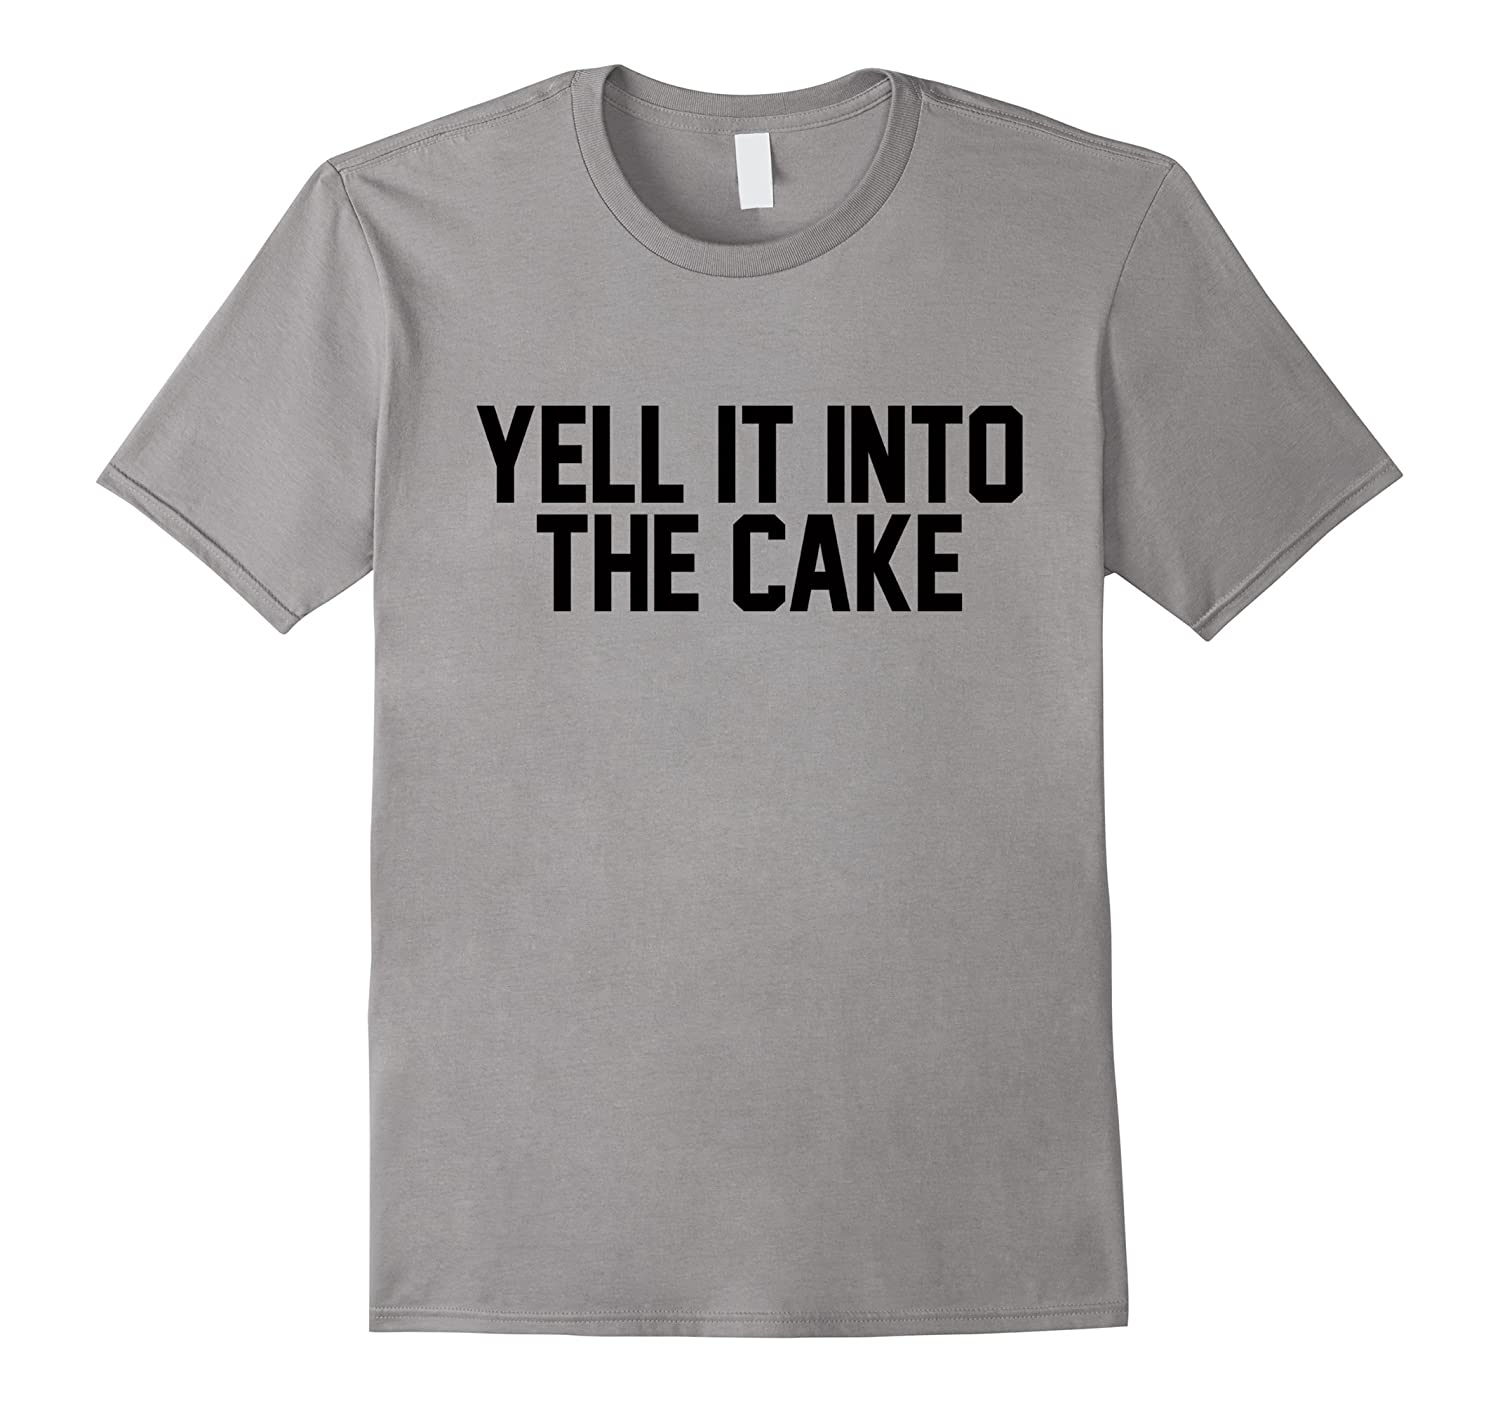 Yell It Into The Cake T-Shirt for Sheetcaking-Art